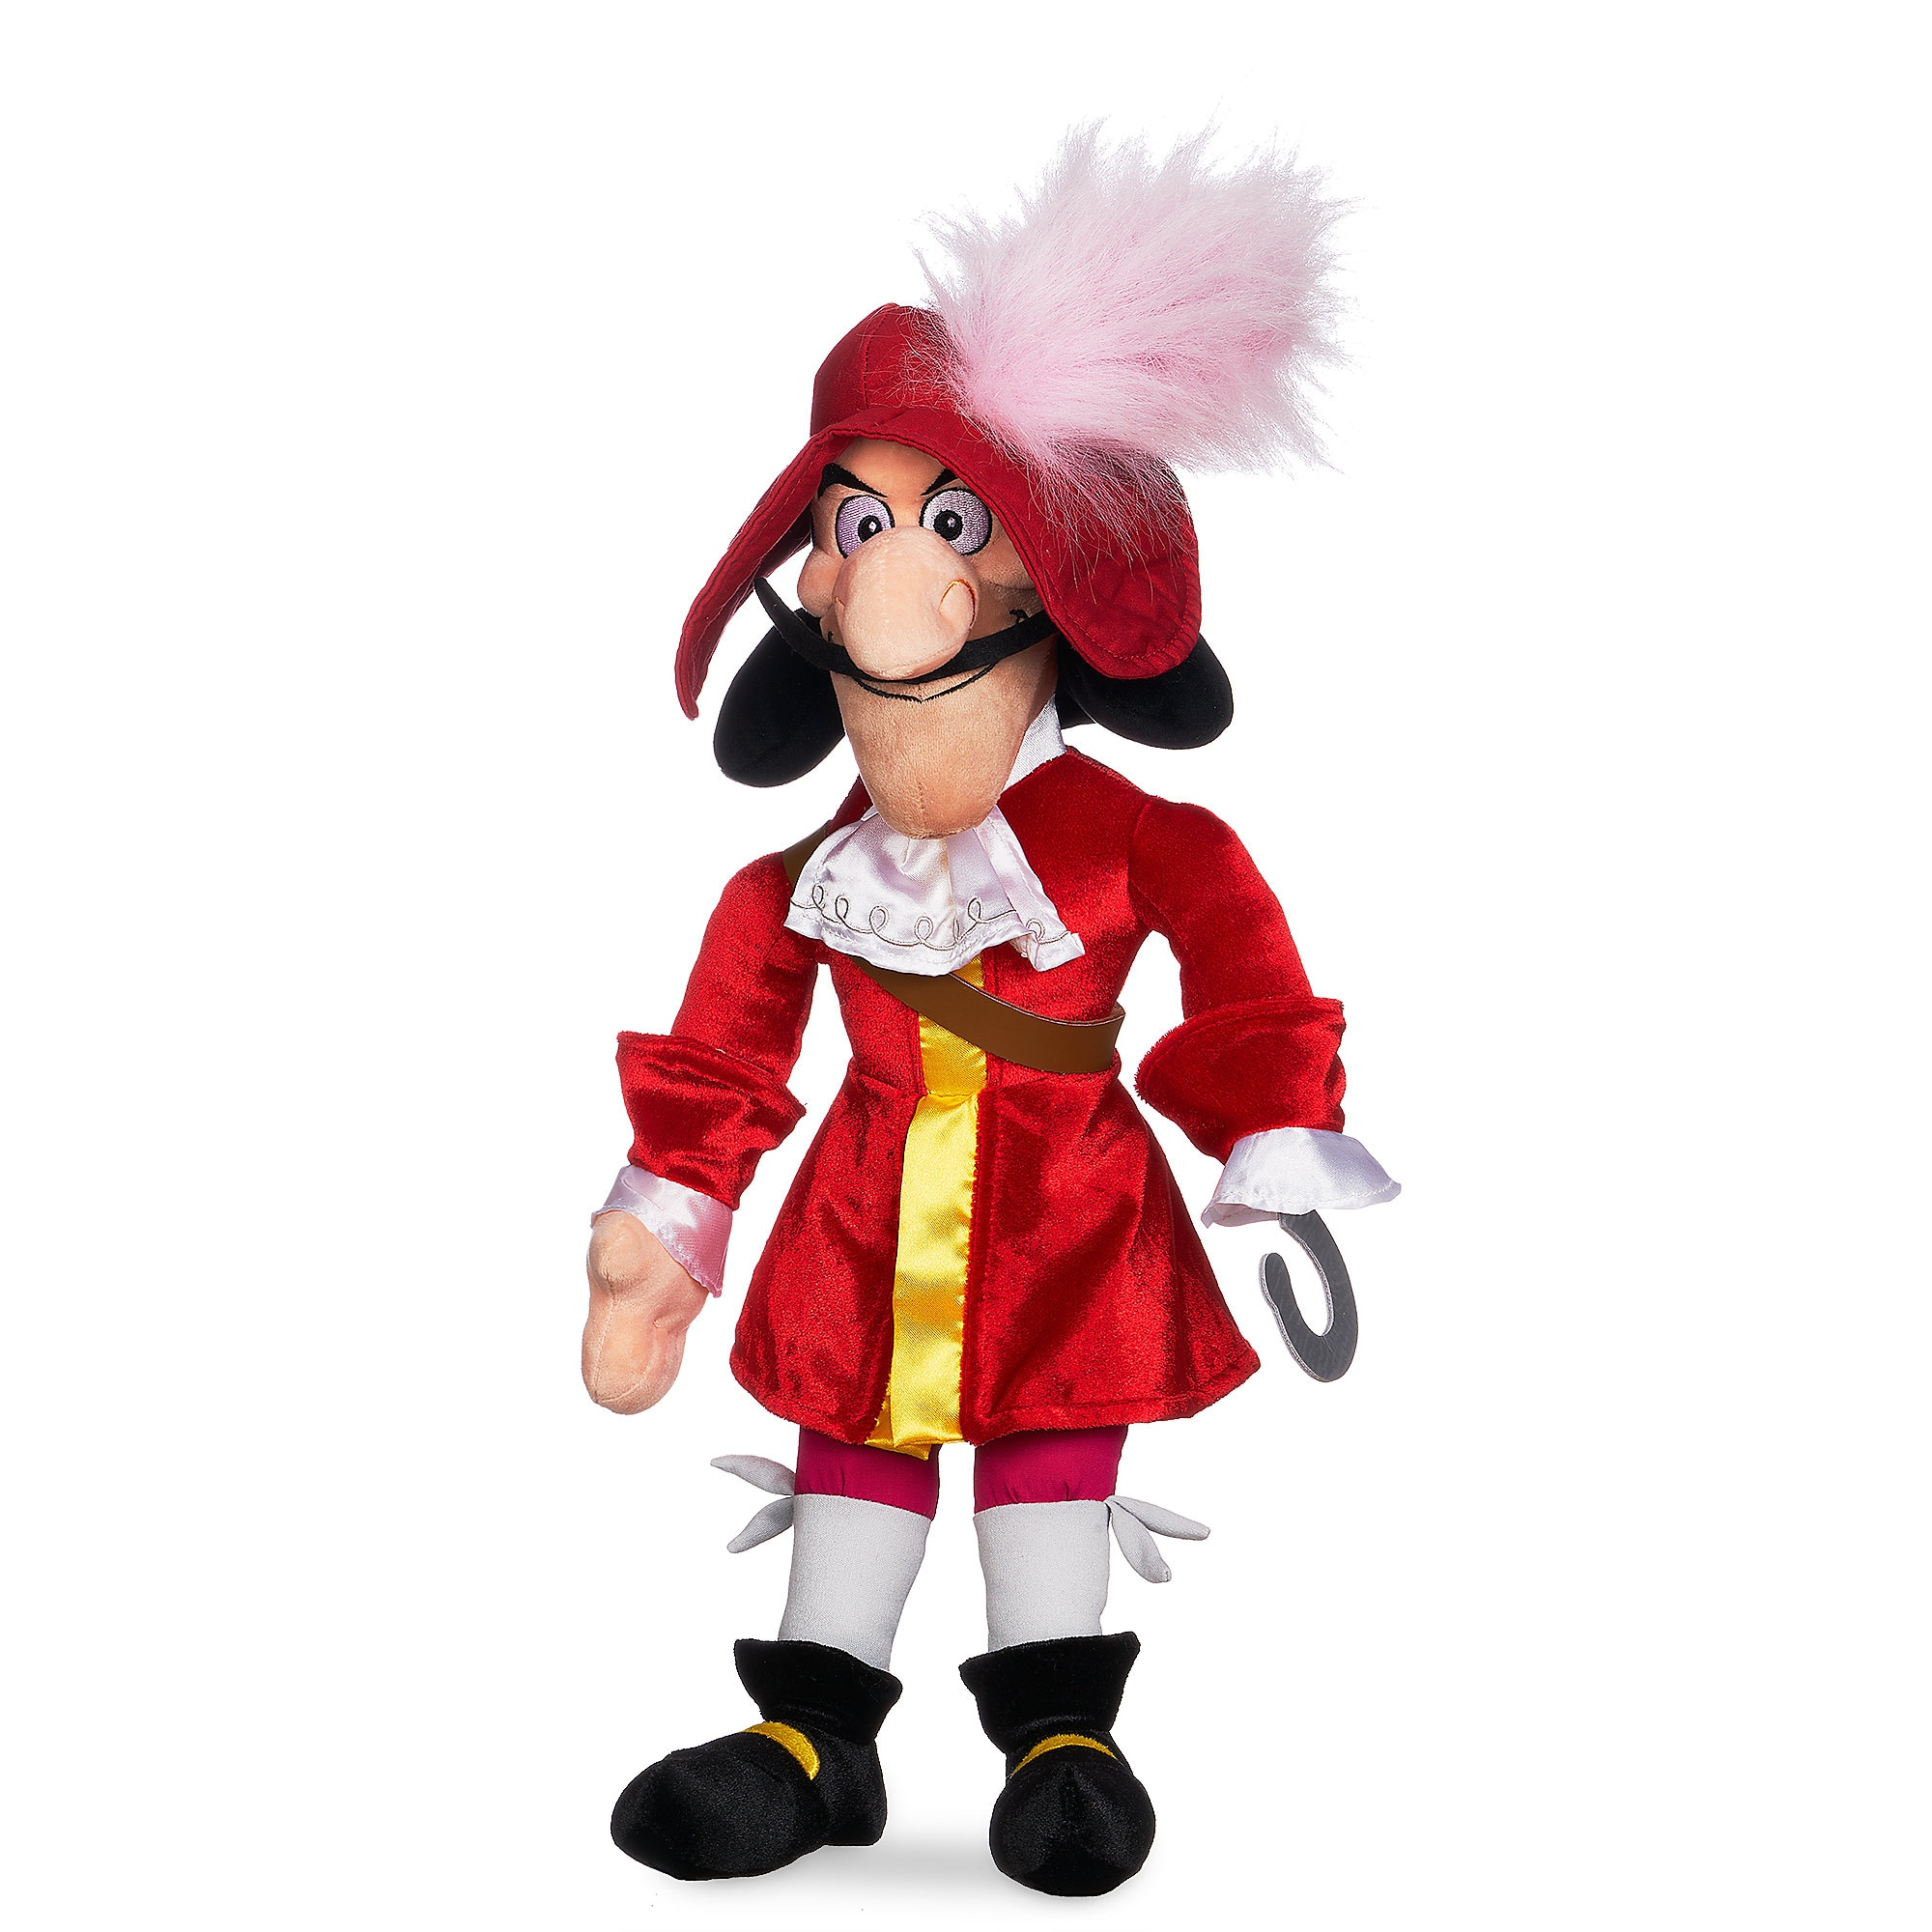 Captain Hook Plush - Peter Pan - Medium